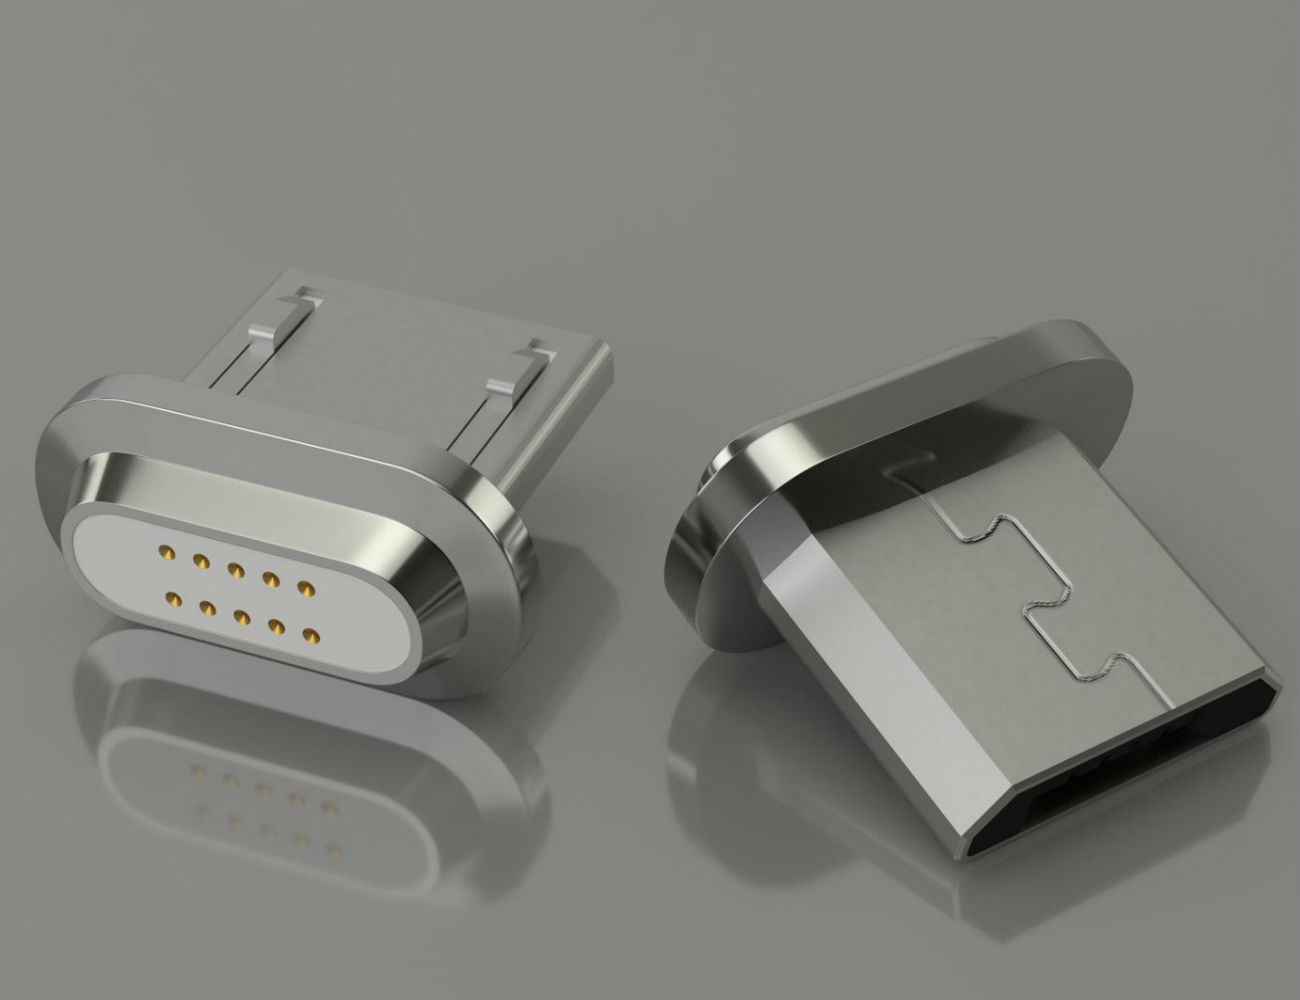 muconnect-fast-charging-connector-08